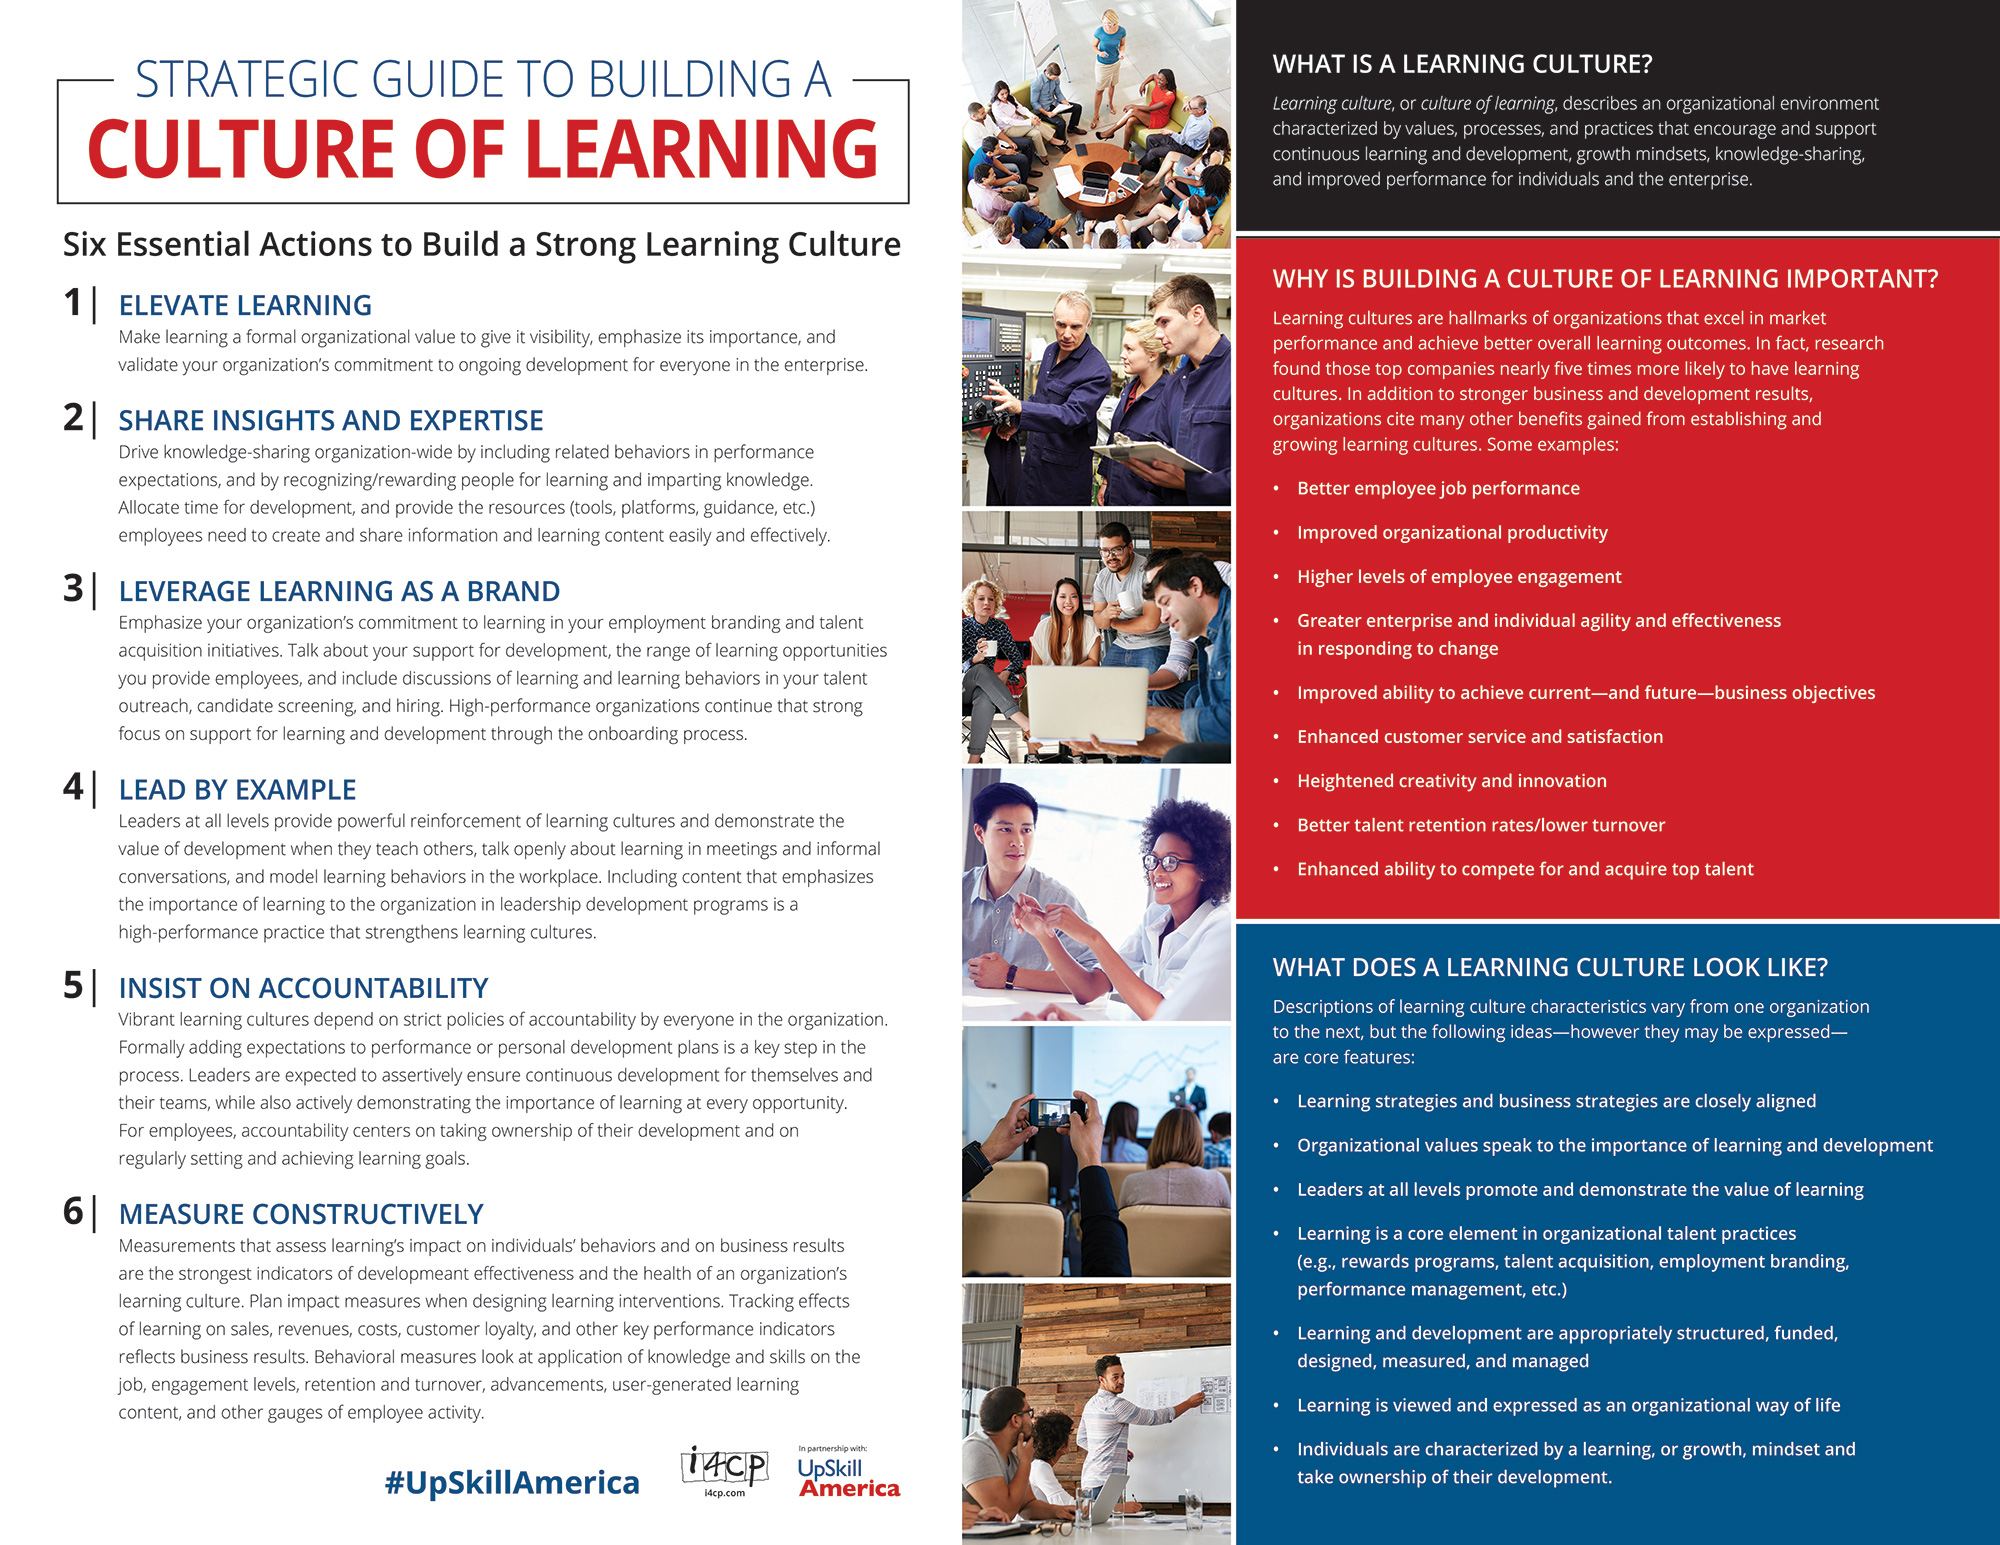 Strategic Guide to Building a Culture of Learning